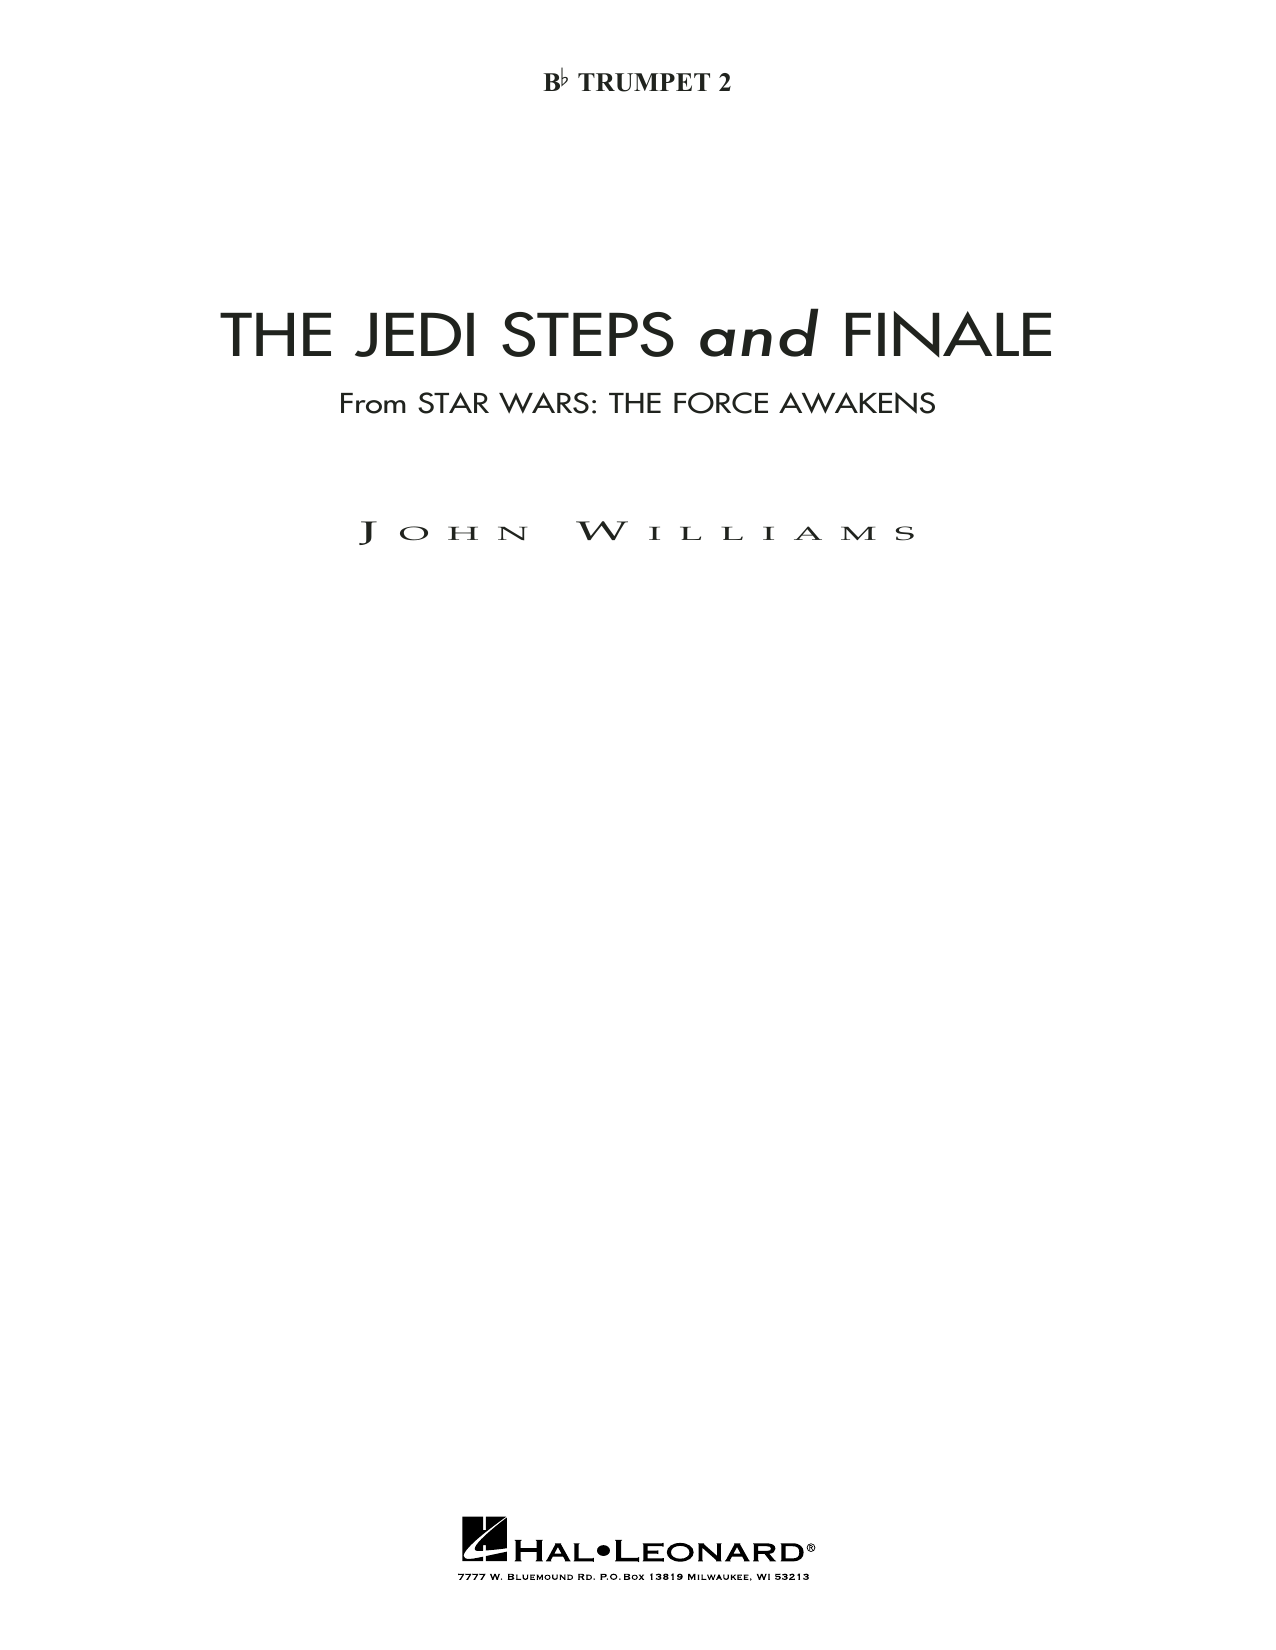 John Williams The Jedi Steps and Finale (from Star Wars: The Force Awakens) - Bb Trumpet 2 (sub. C Tpt. 2) sheet music preview music notes and score for Concert Band including 4 page(s)